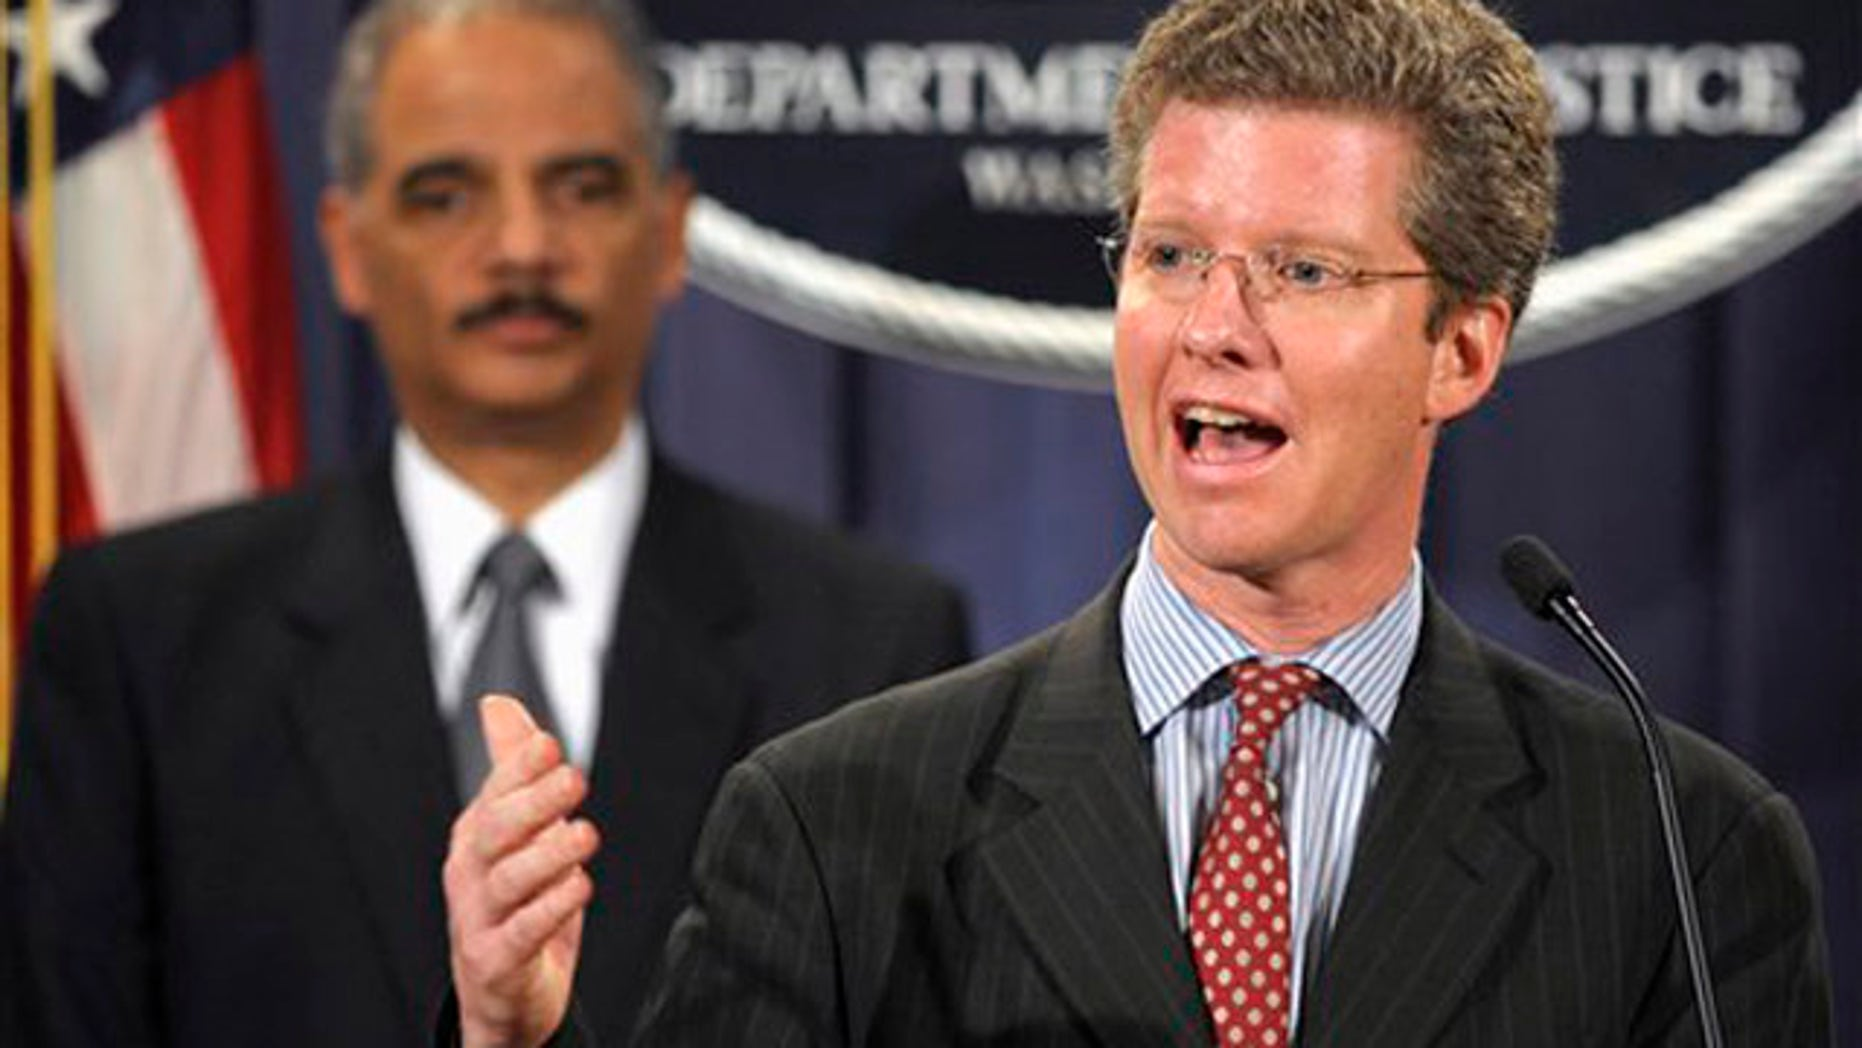 Jan. 27, 2012: Attorney General Eric Holder, left, watches as Housing and Urban Development Secretary Shaun Donovan speaks at the Justice Department in Washington.